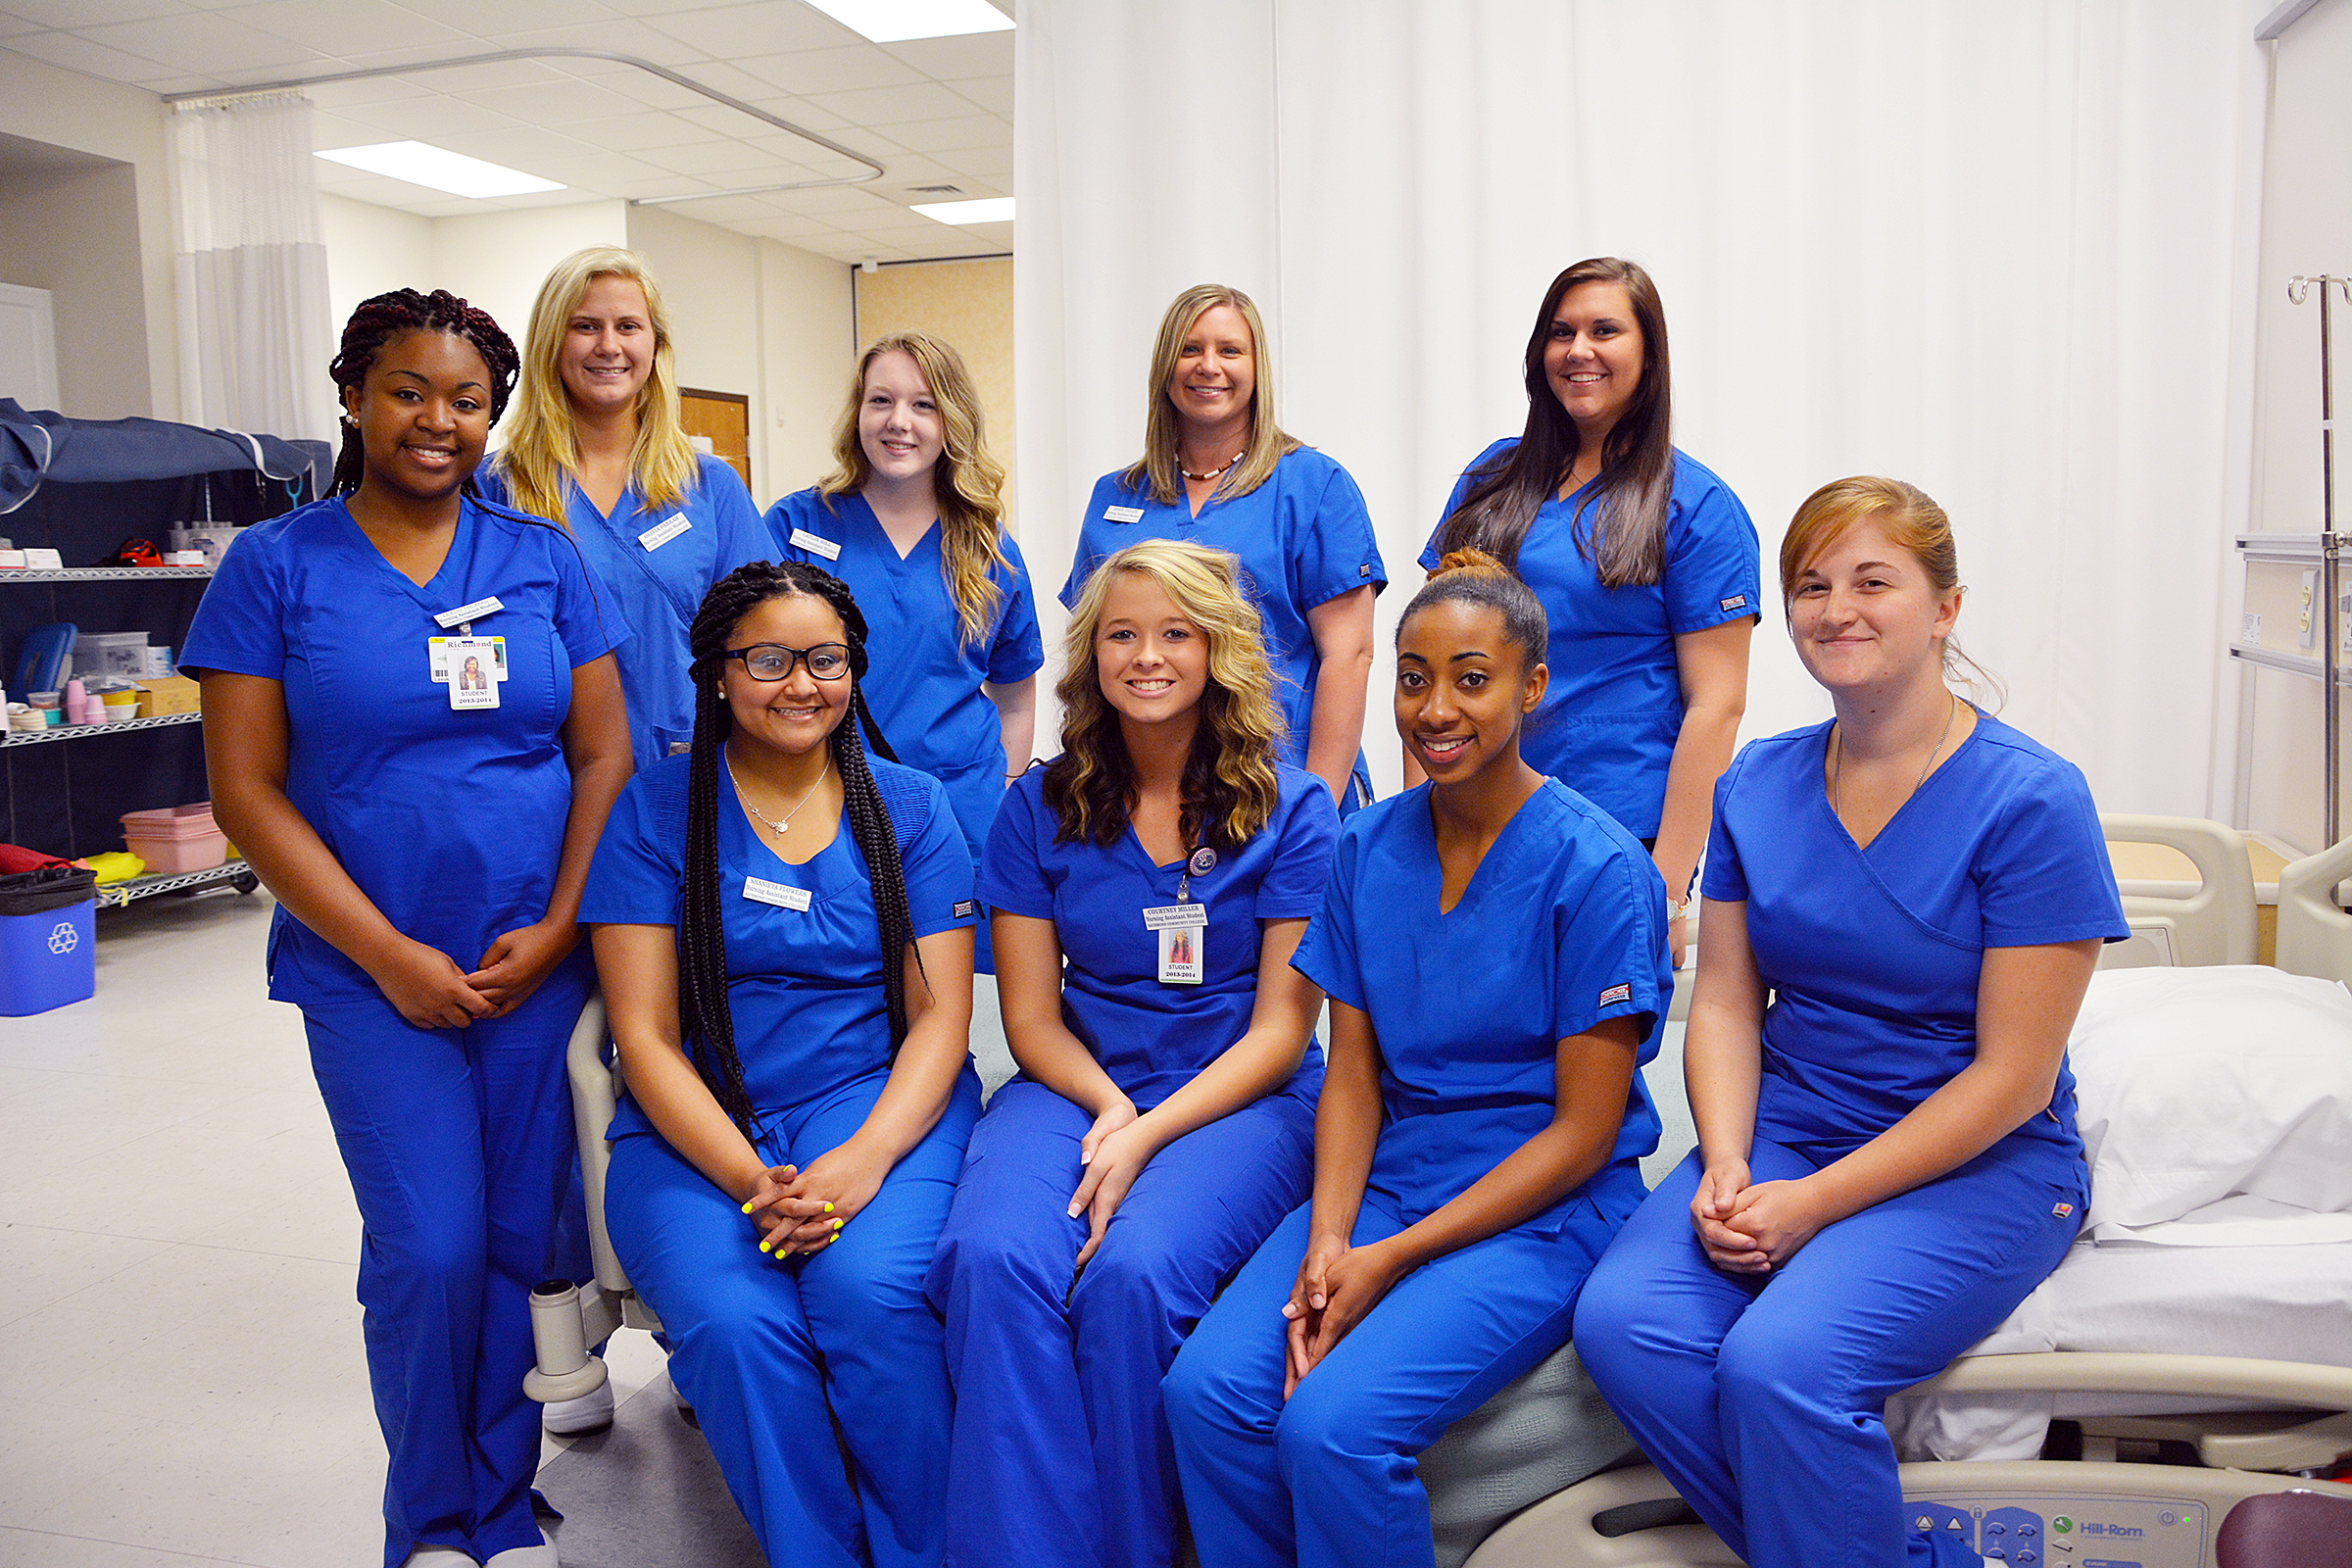 Nursing Assistant graduates pose for a photo in a nursing lab setting.